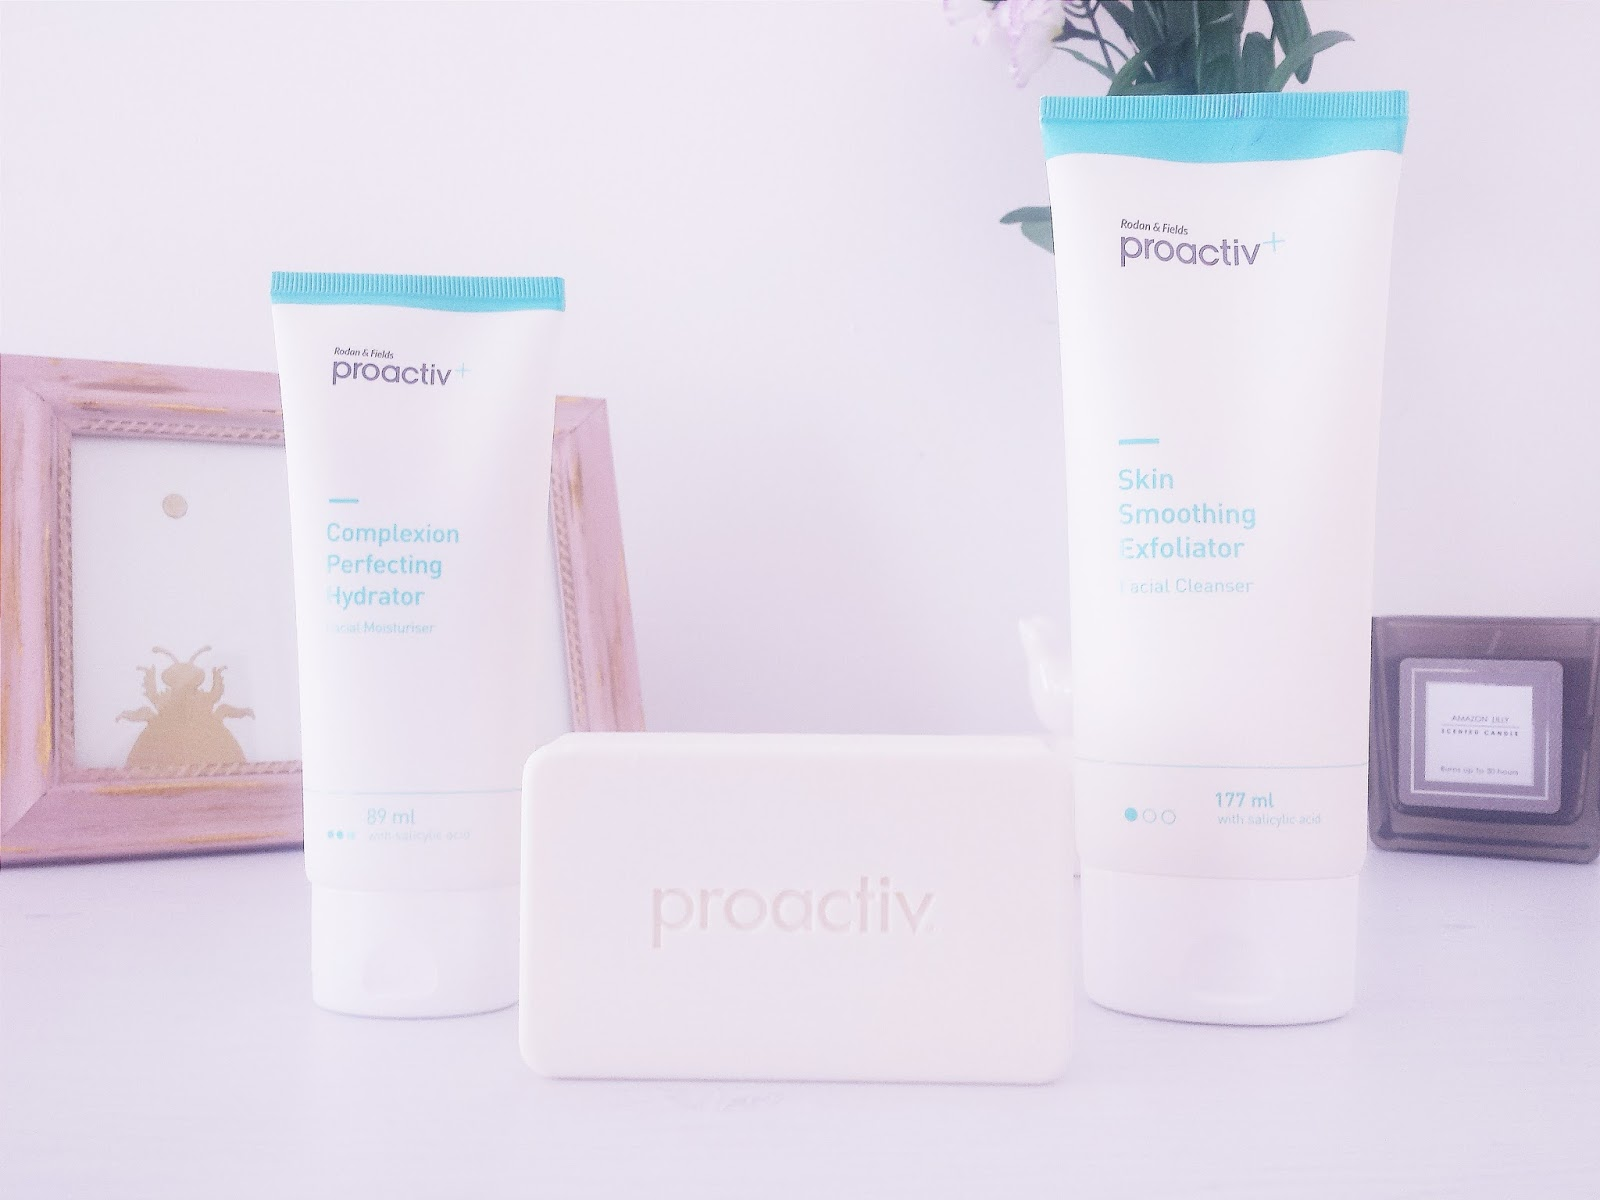 ProActiv+ Skincare Cleansing Body Bar, Skin Smoothing Exfoliator & Complexion Perfecting Hydrator